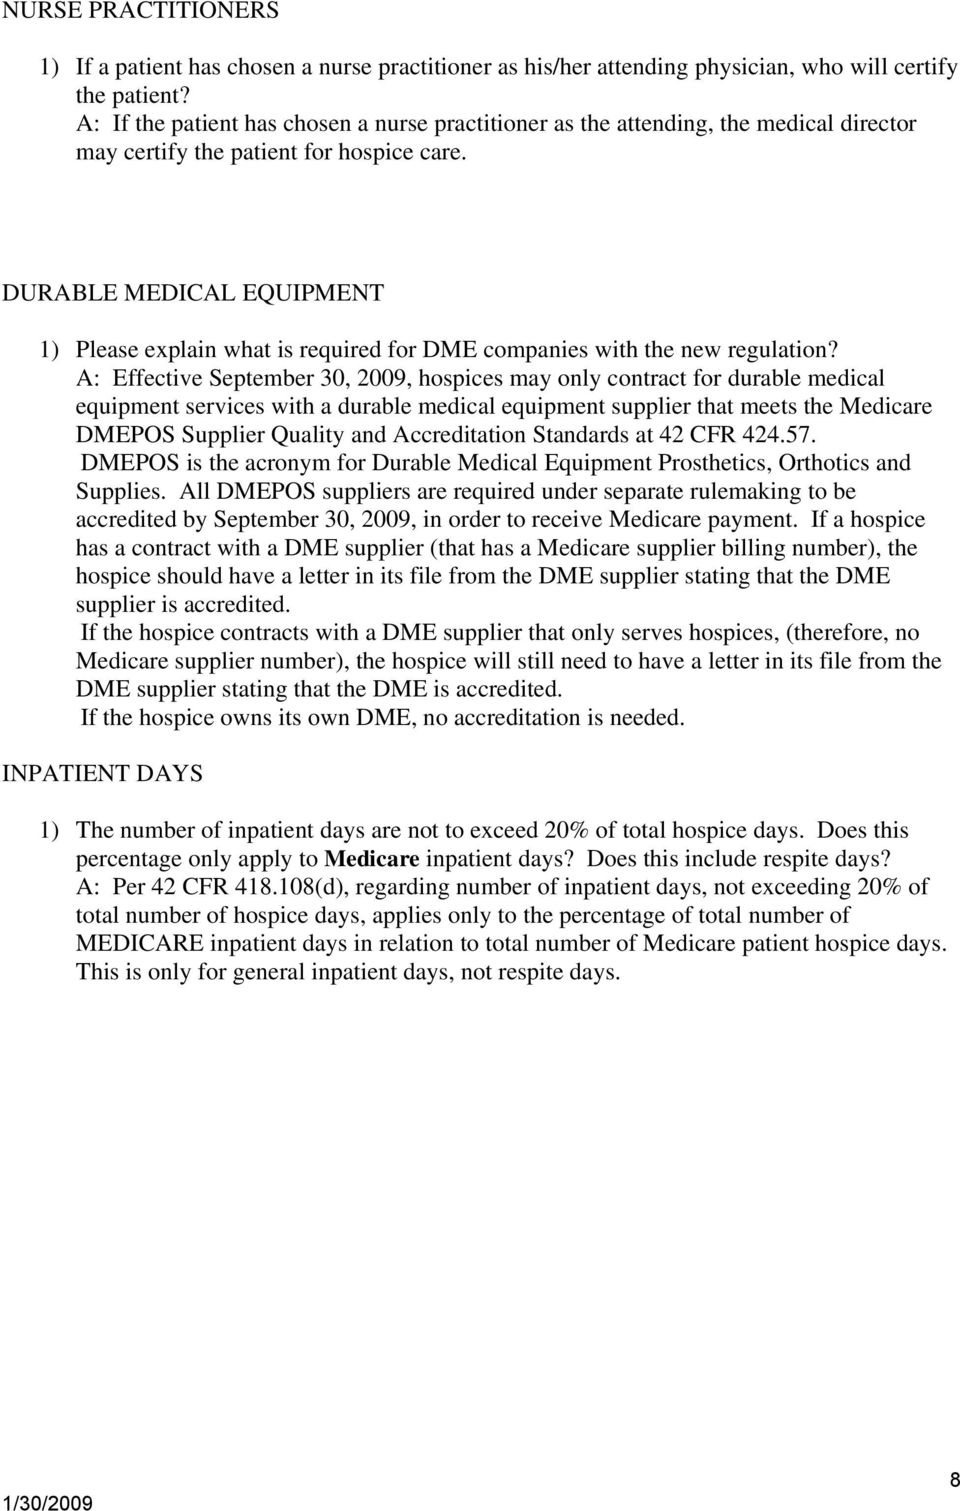 DURABLE MEDICAL EQUIPMENT 1) Please explain what is required for DME companies with the new regulation?